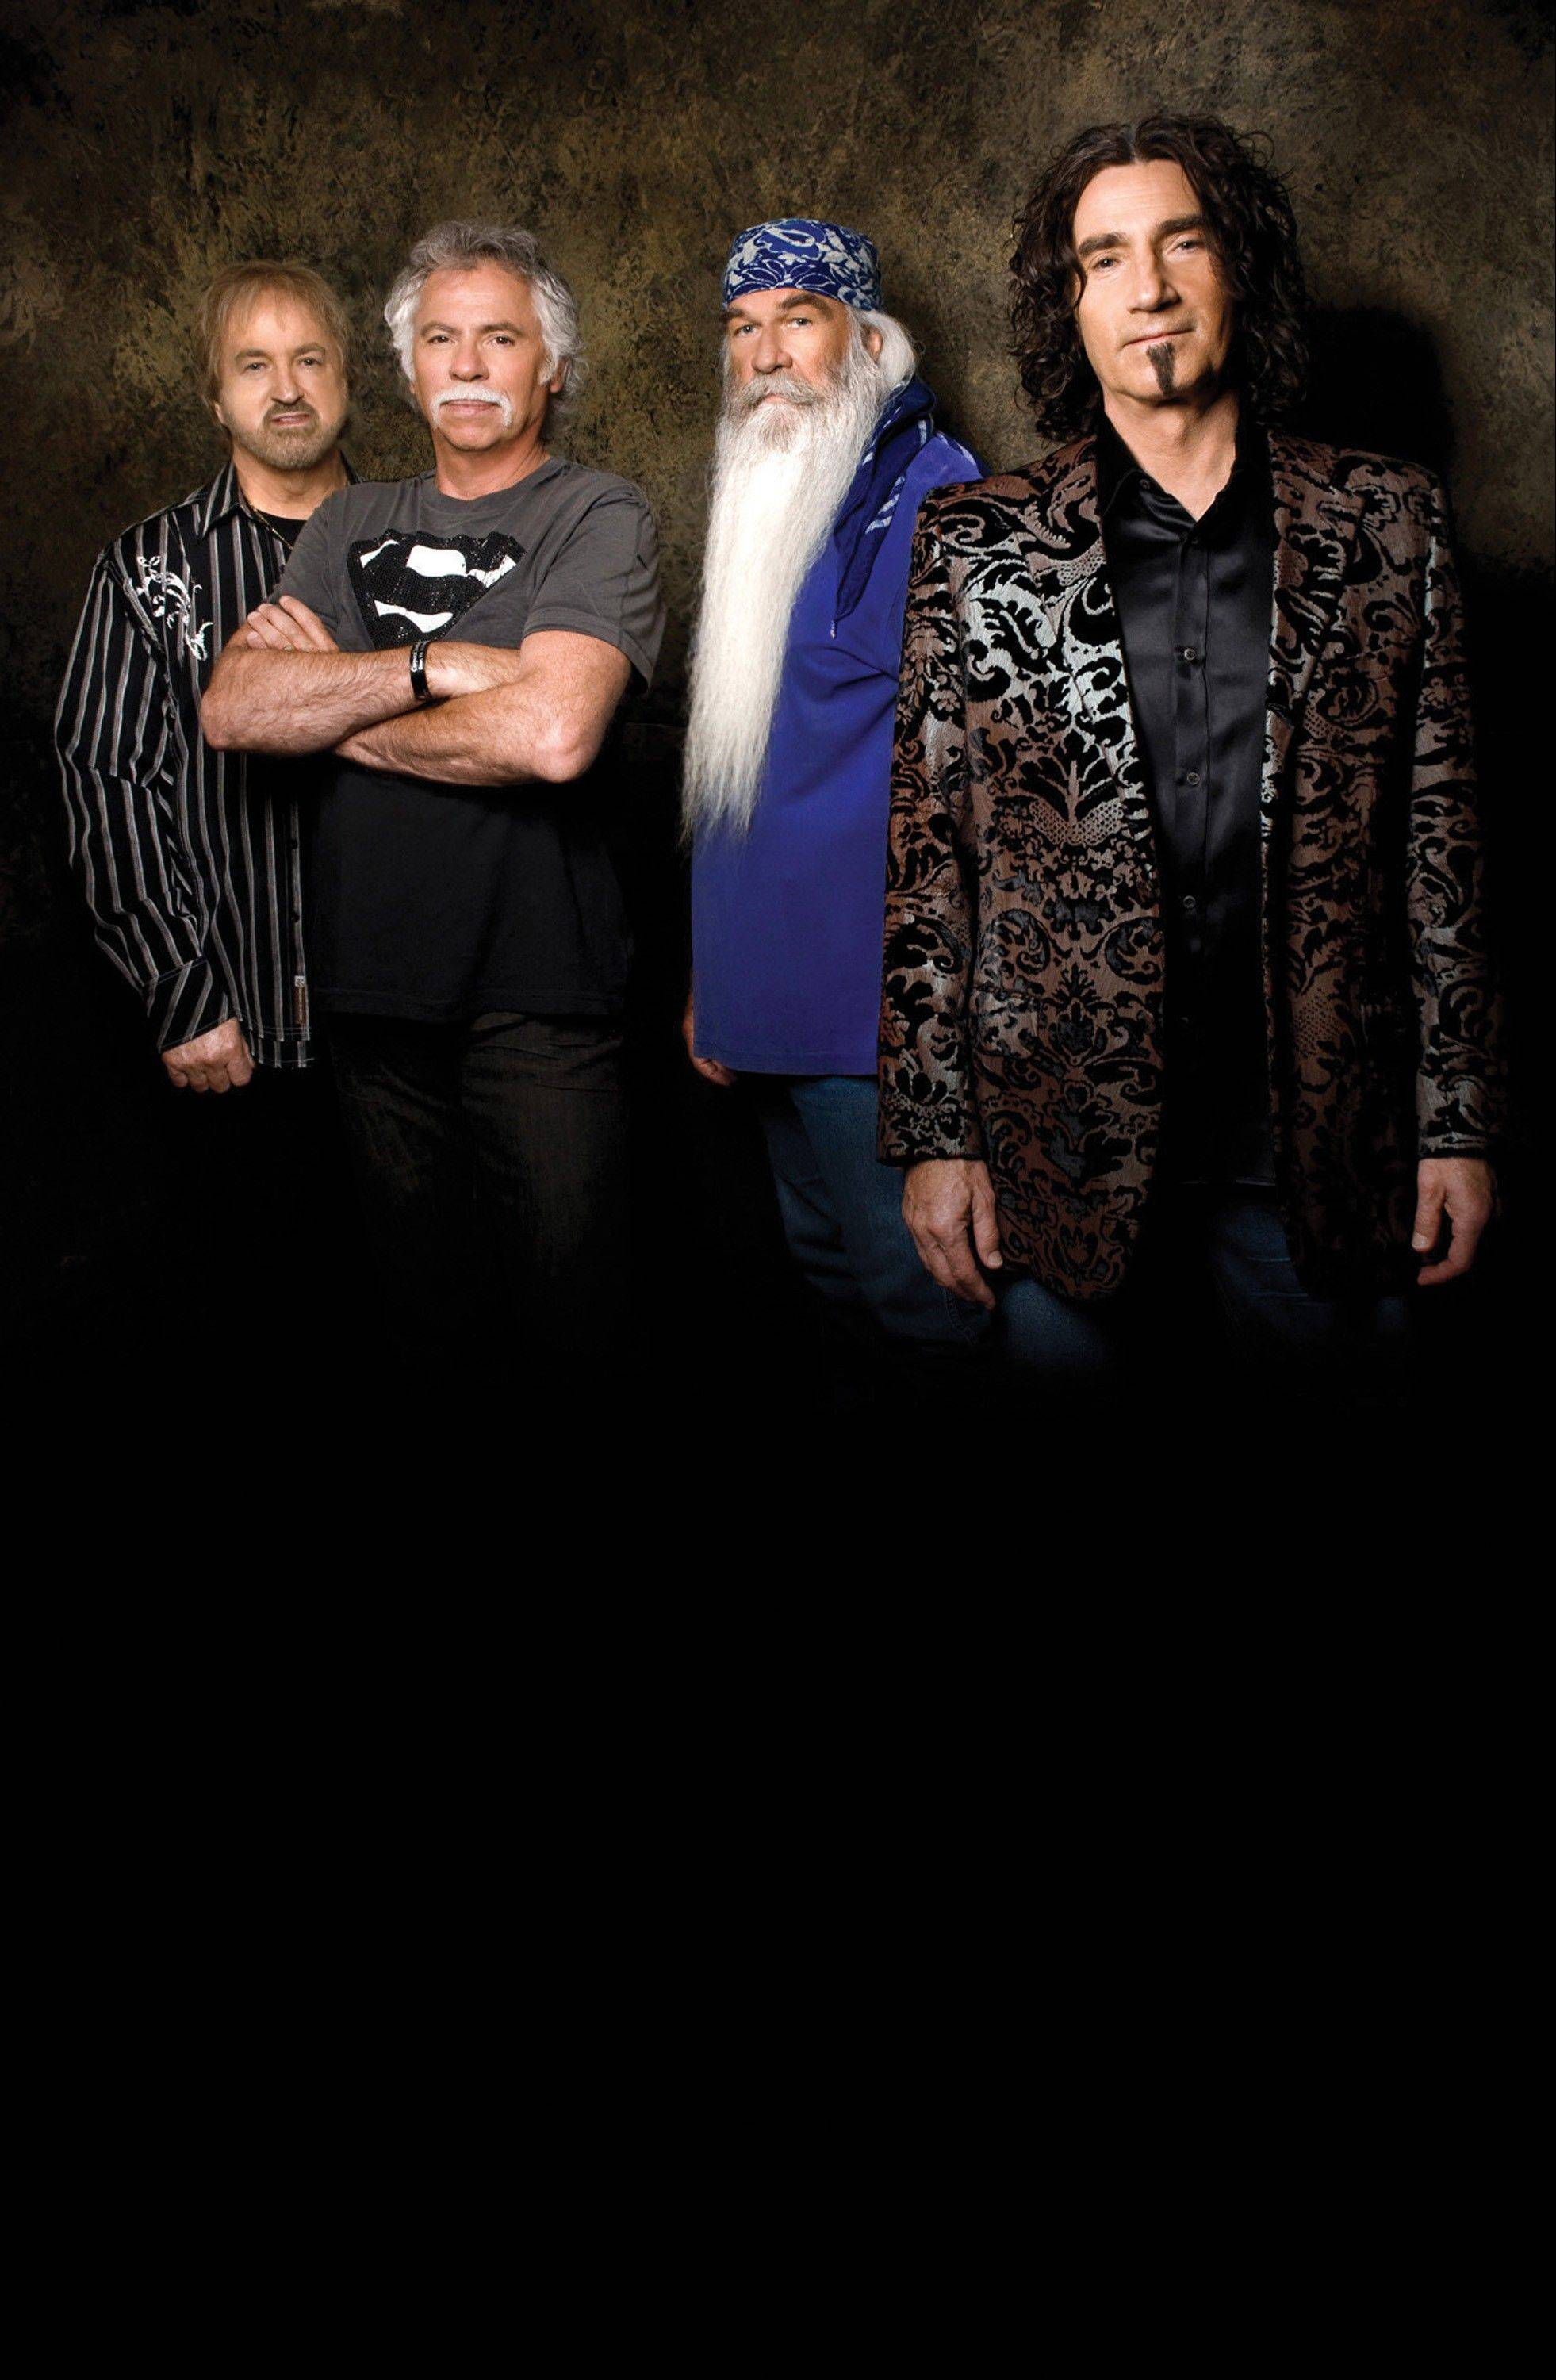 The Oak Ridge Boys have sold more than 30 million records.